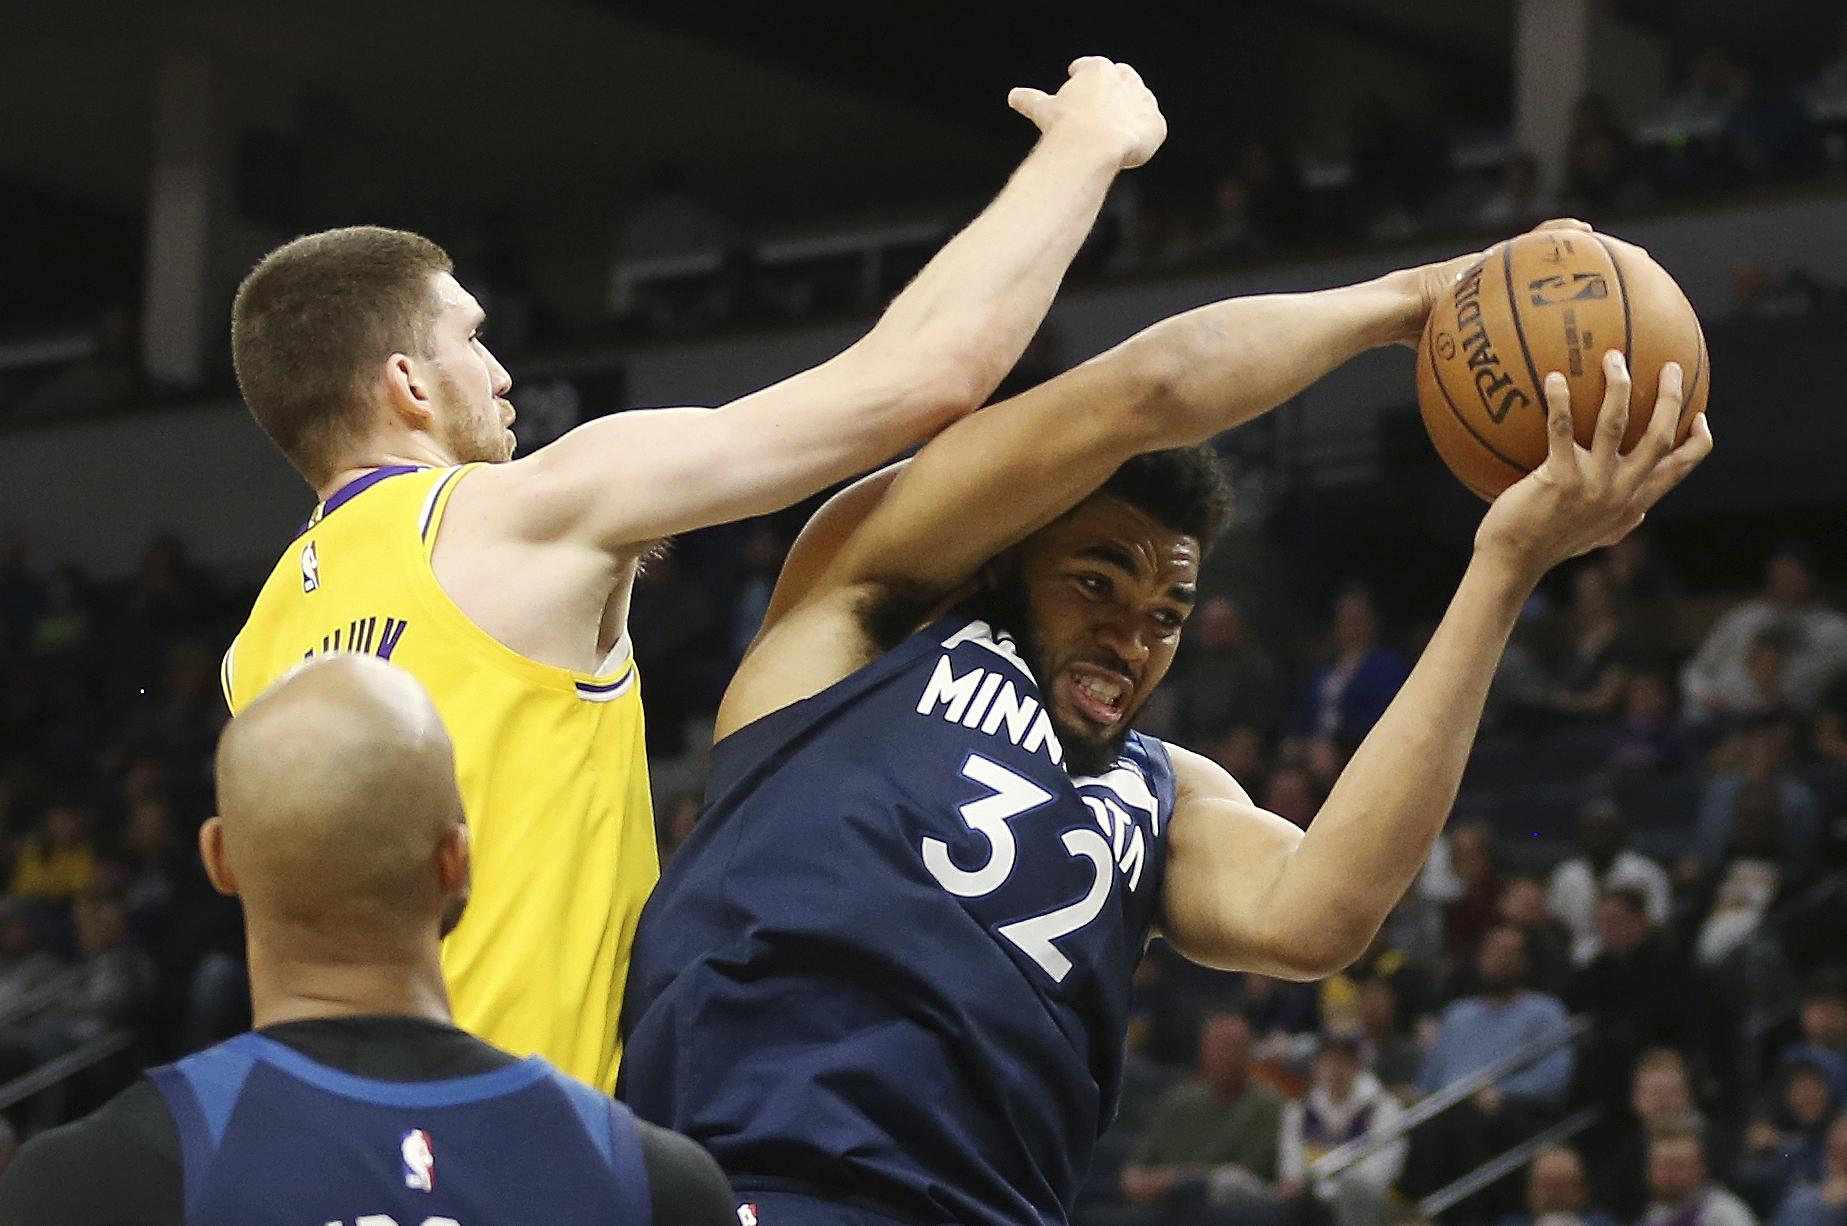 f2a599edcd9 Minnesota Timberwolves  Karl-Anthony Towns (32) rebounds against Los  Angeles Lakers